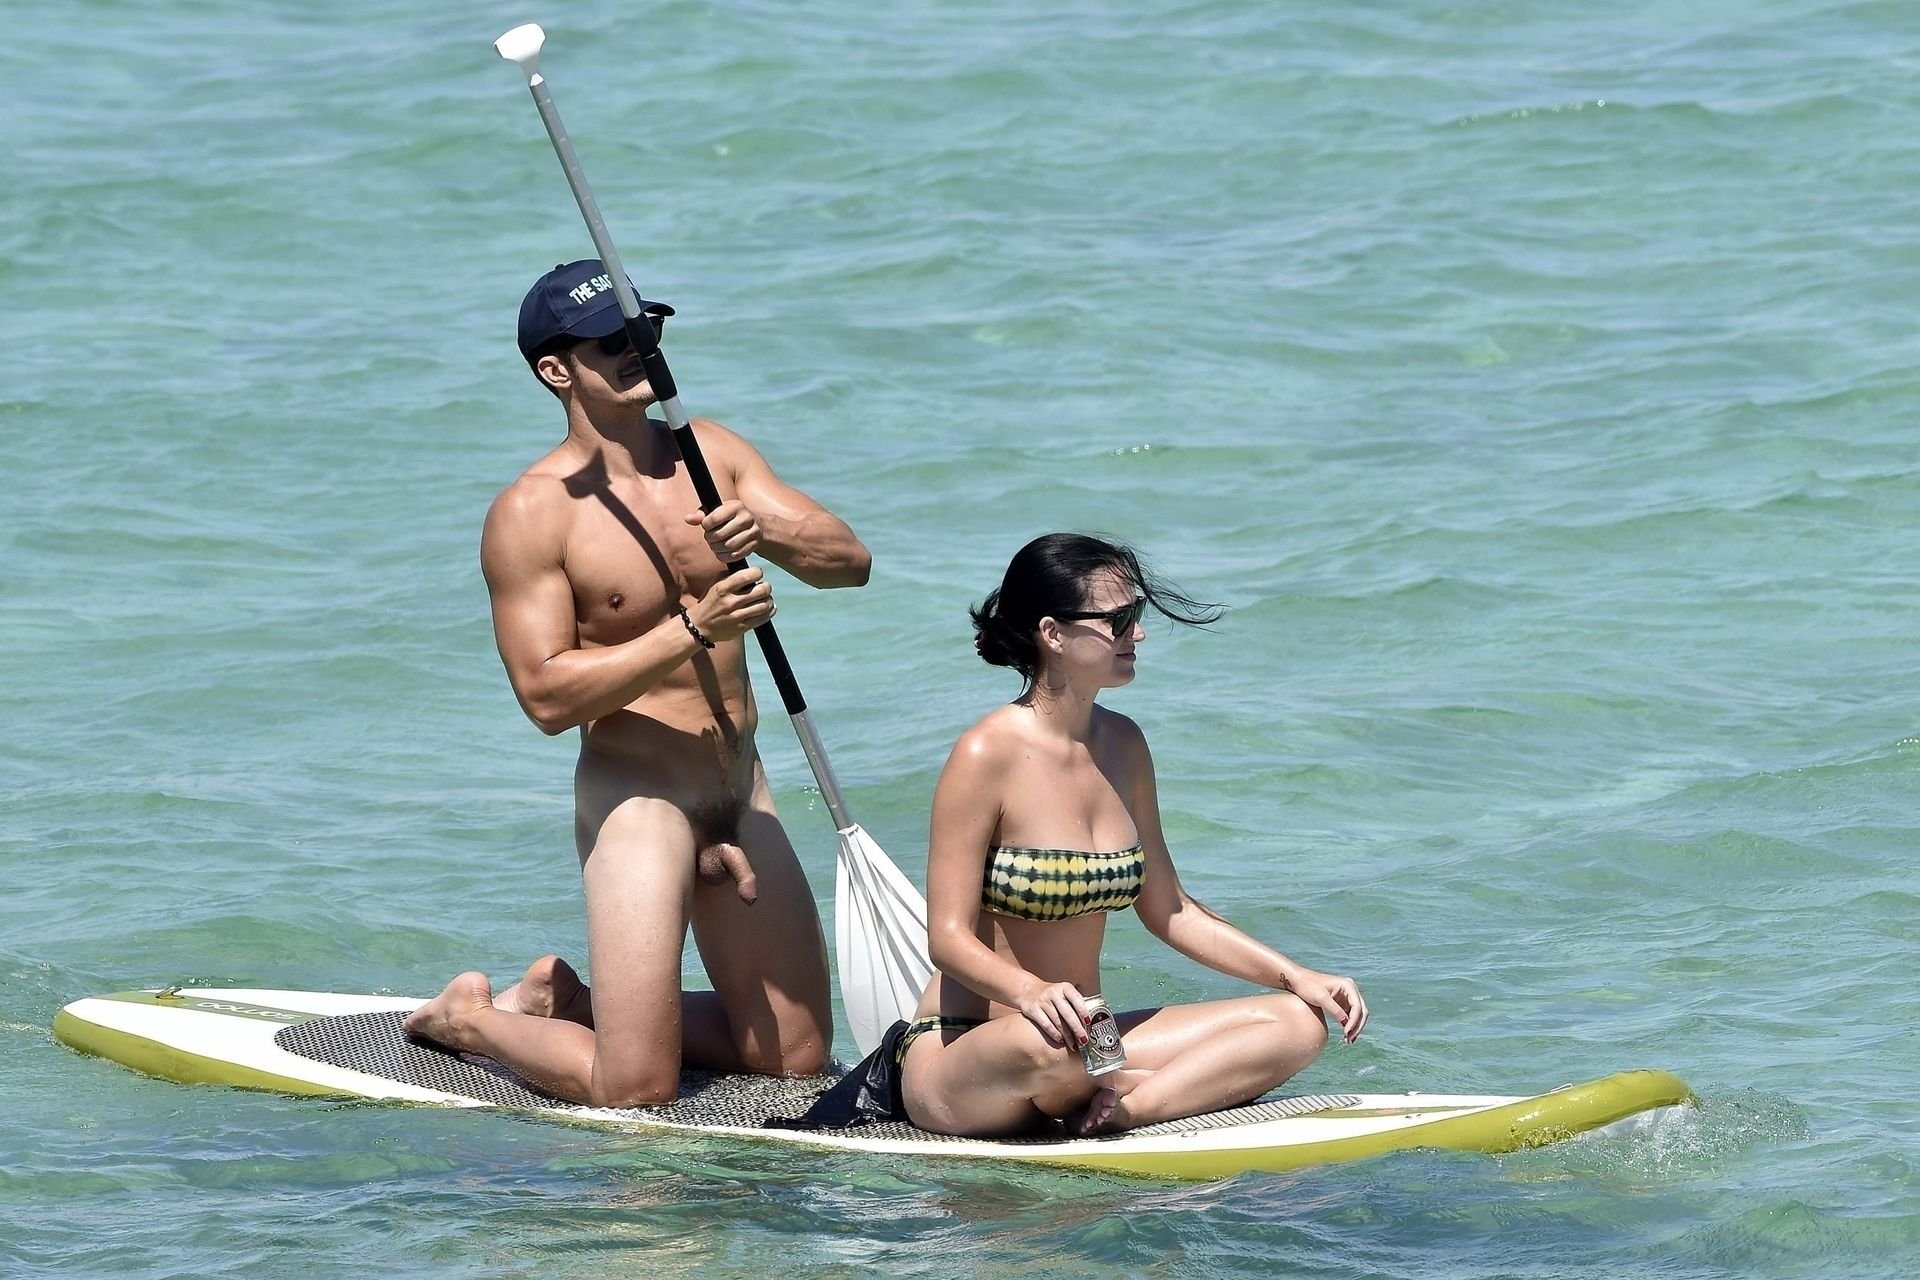 Orlando Blooms nude paddle boarding with Katy Perry